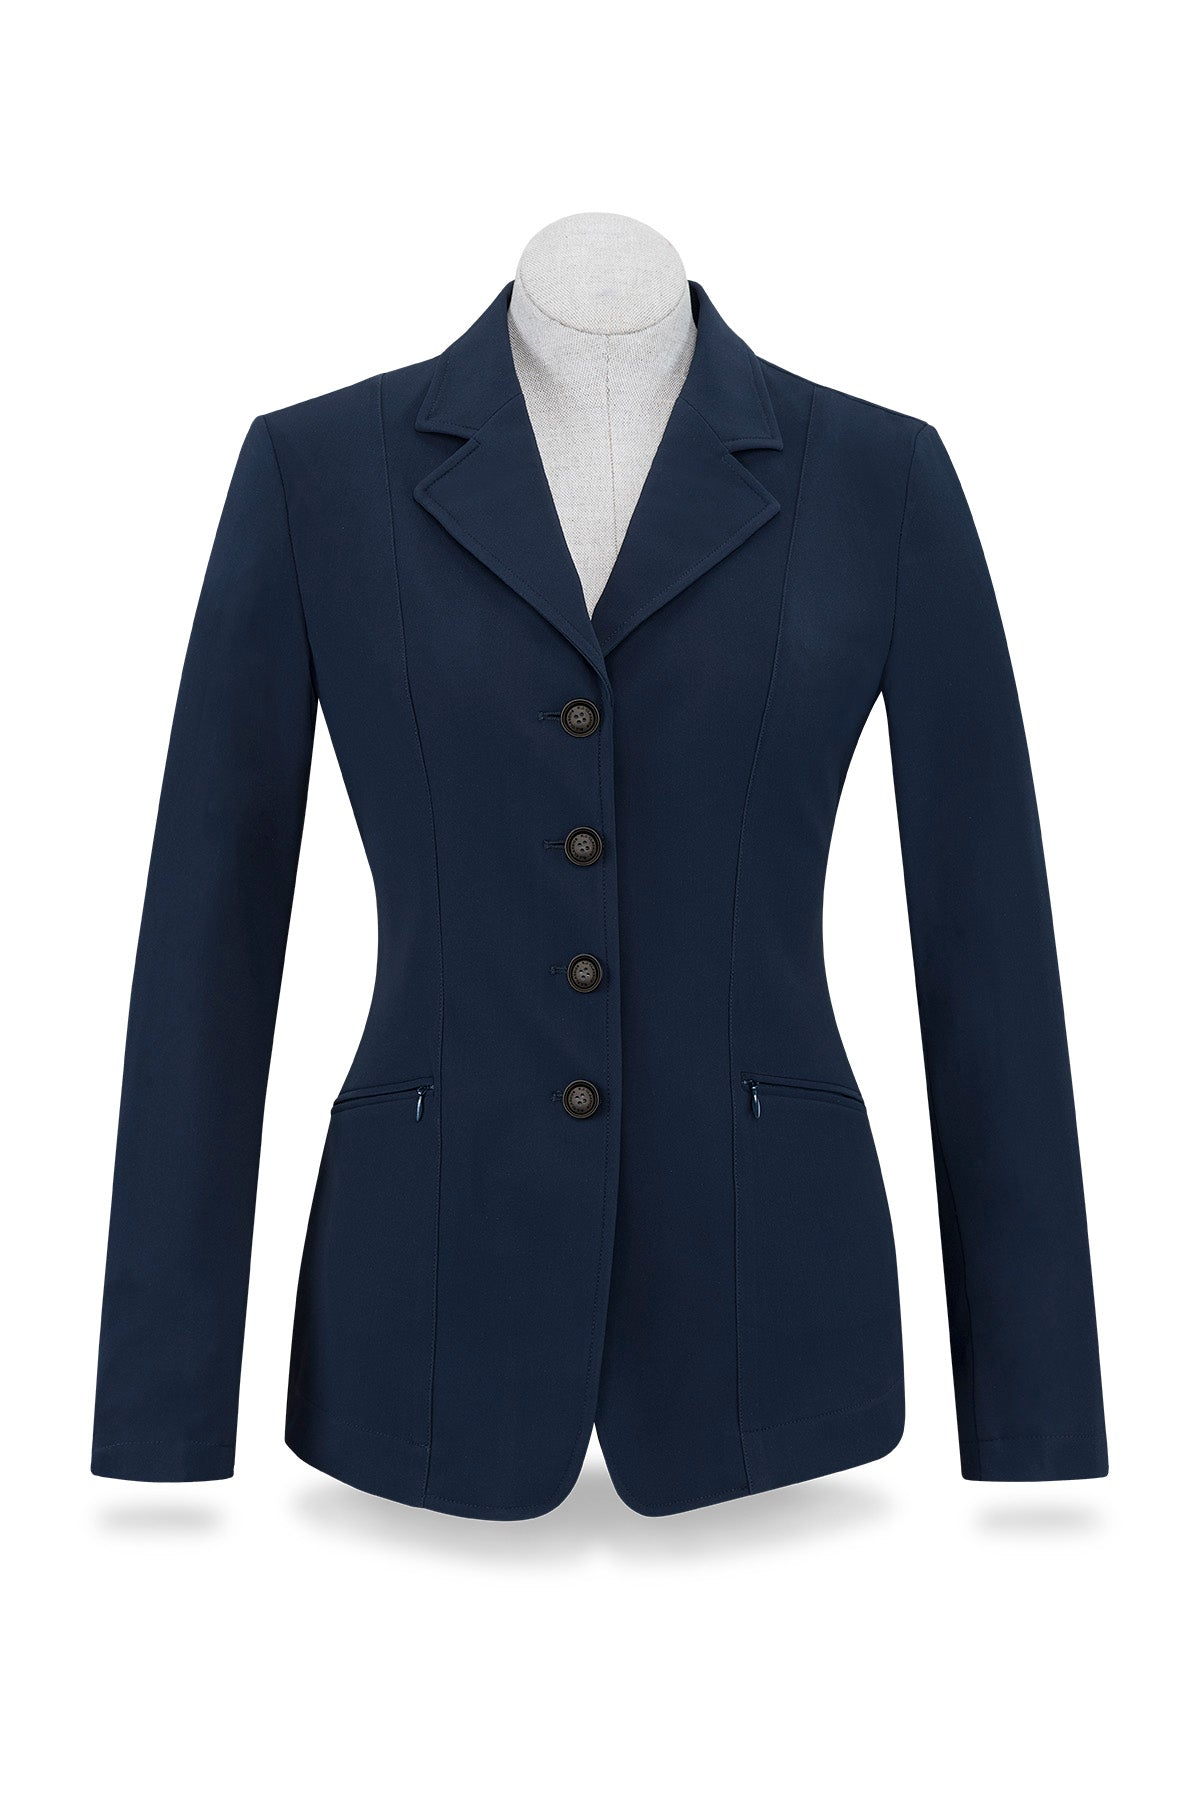 R.J. Classics Victory Ladies' Show Coat- Navy